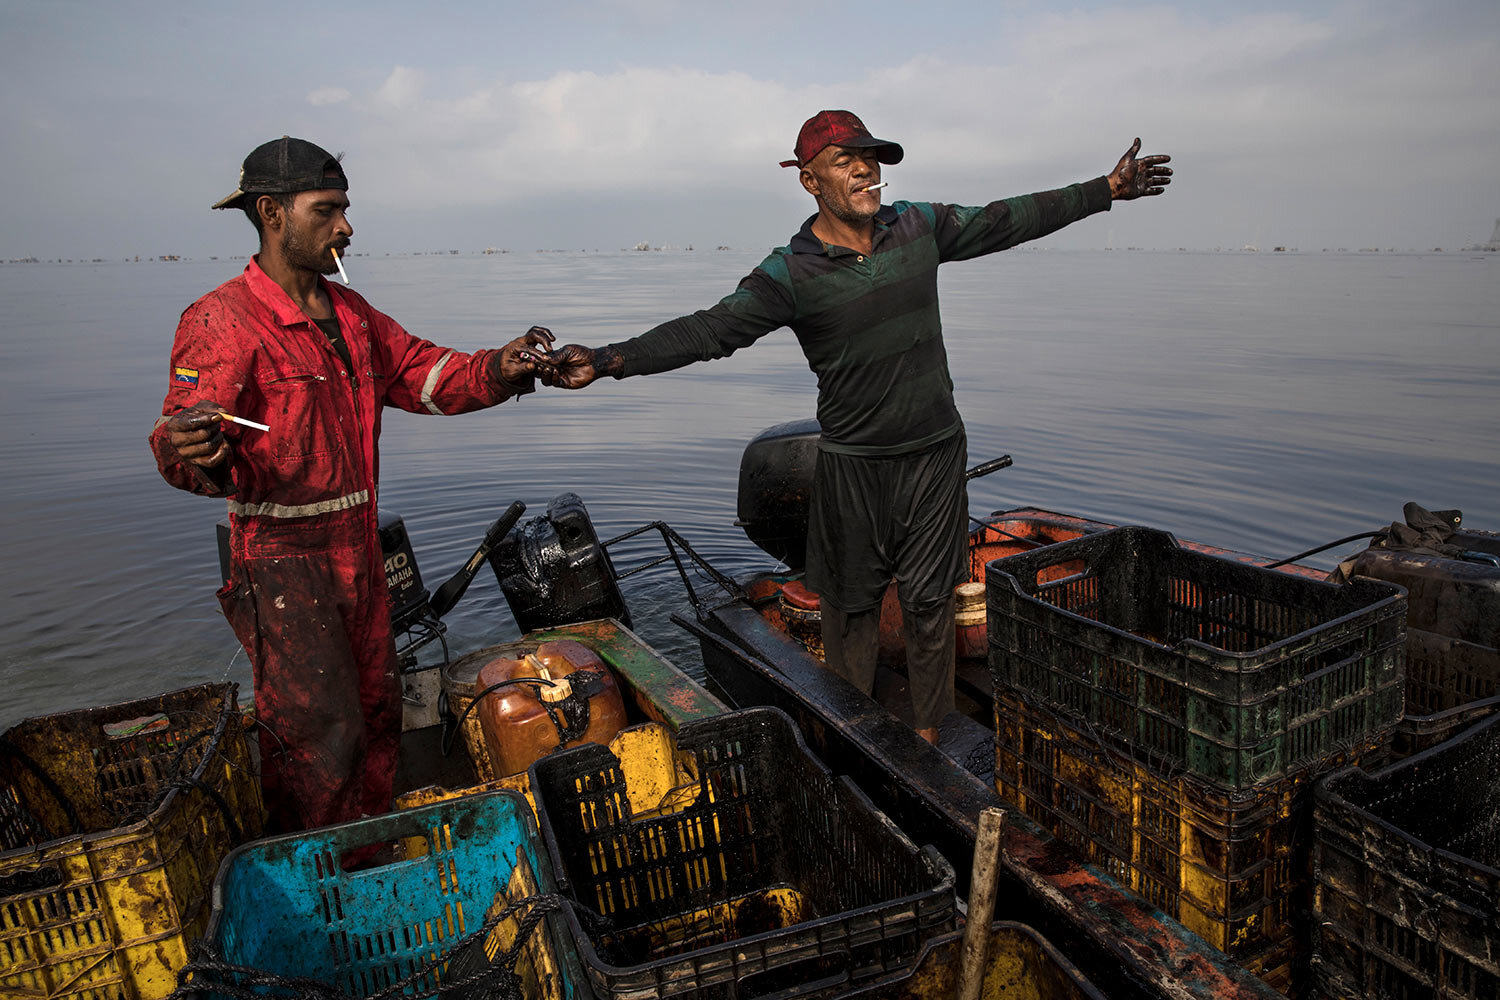 Crab fisherman whose clothing and equipment are soaked with oil take a smoke break on Lake Maracaibo near Punta Gorda, Cabimas, Venezuela, May 17, 2019. An explosion badly burned three fishermen recently when they fired up their boat's motor near a natural gas leak that bubbles up from the bottom of the lake, engulfing them in flames. (AP Photo/Rodrigo Abd)